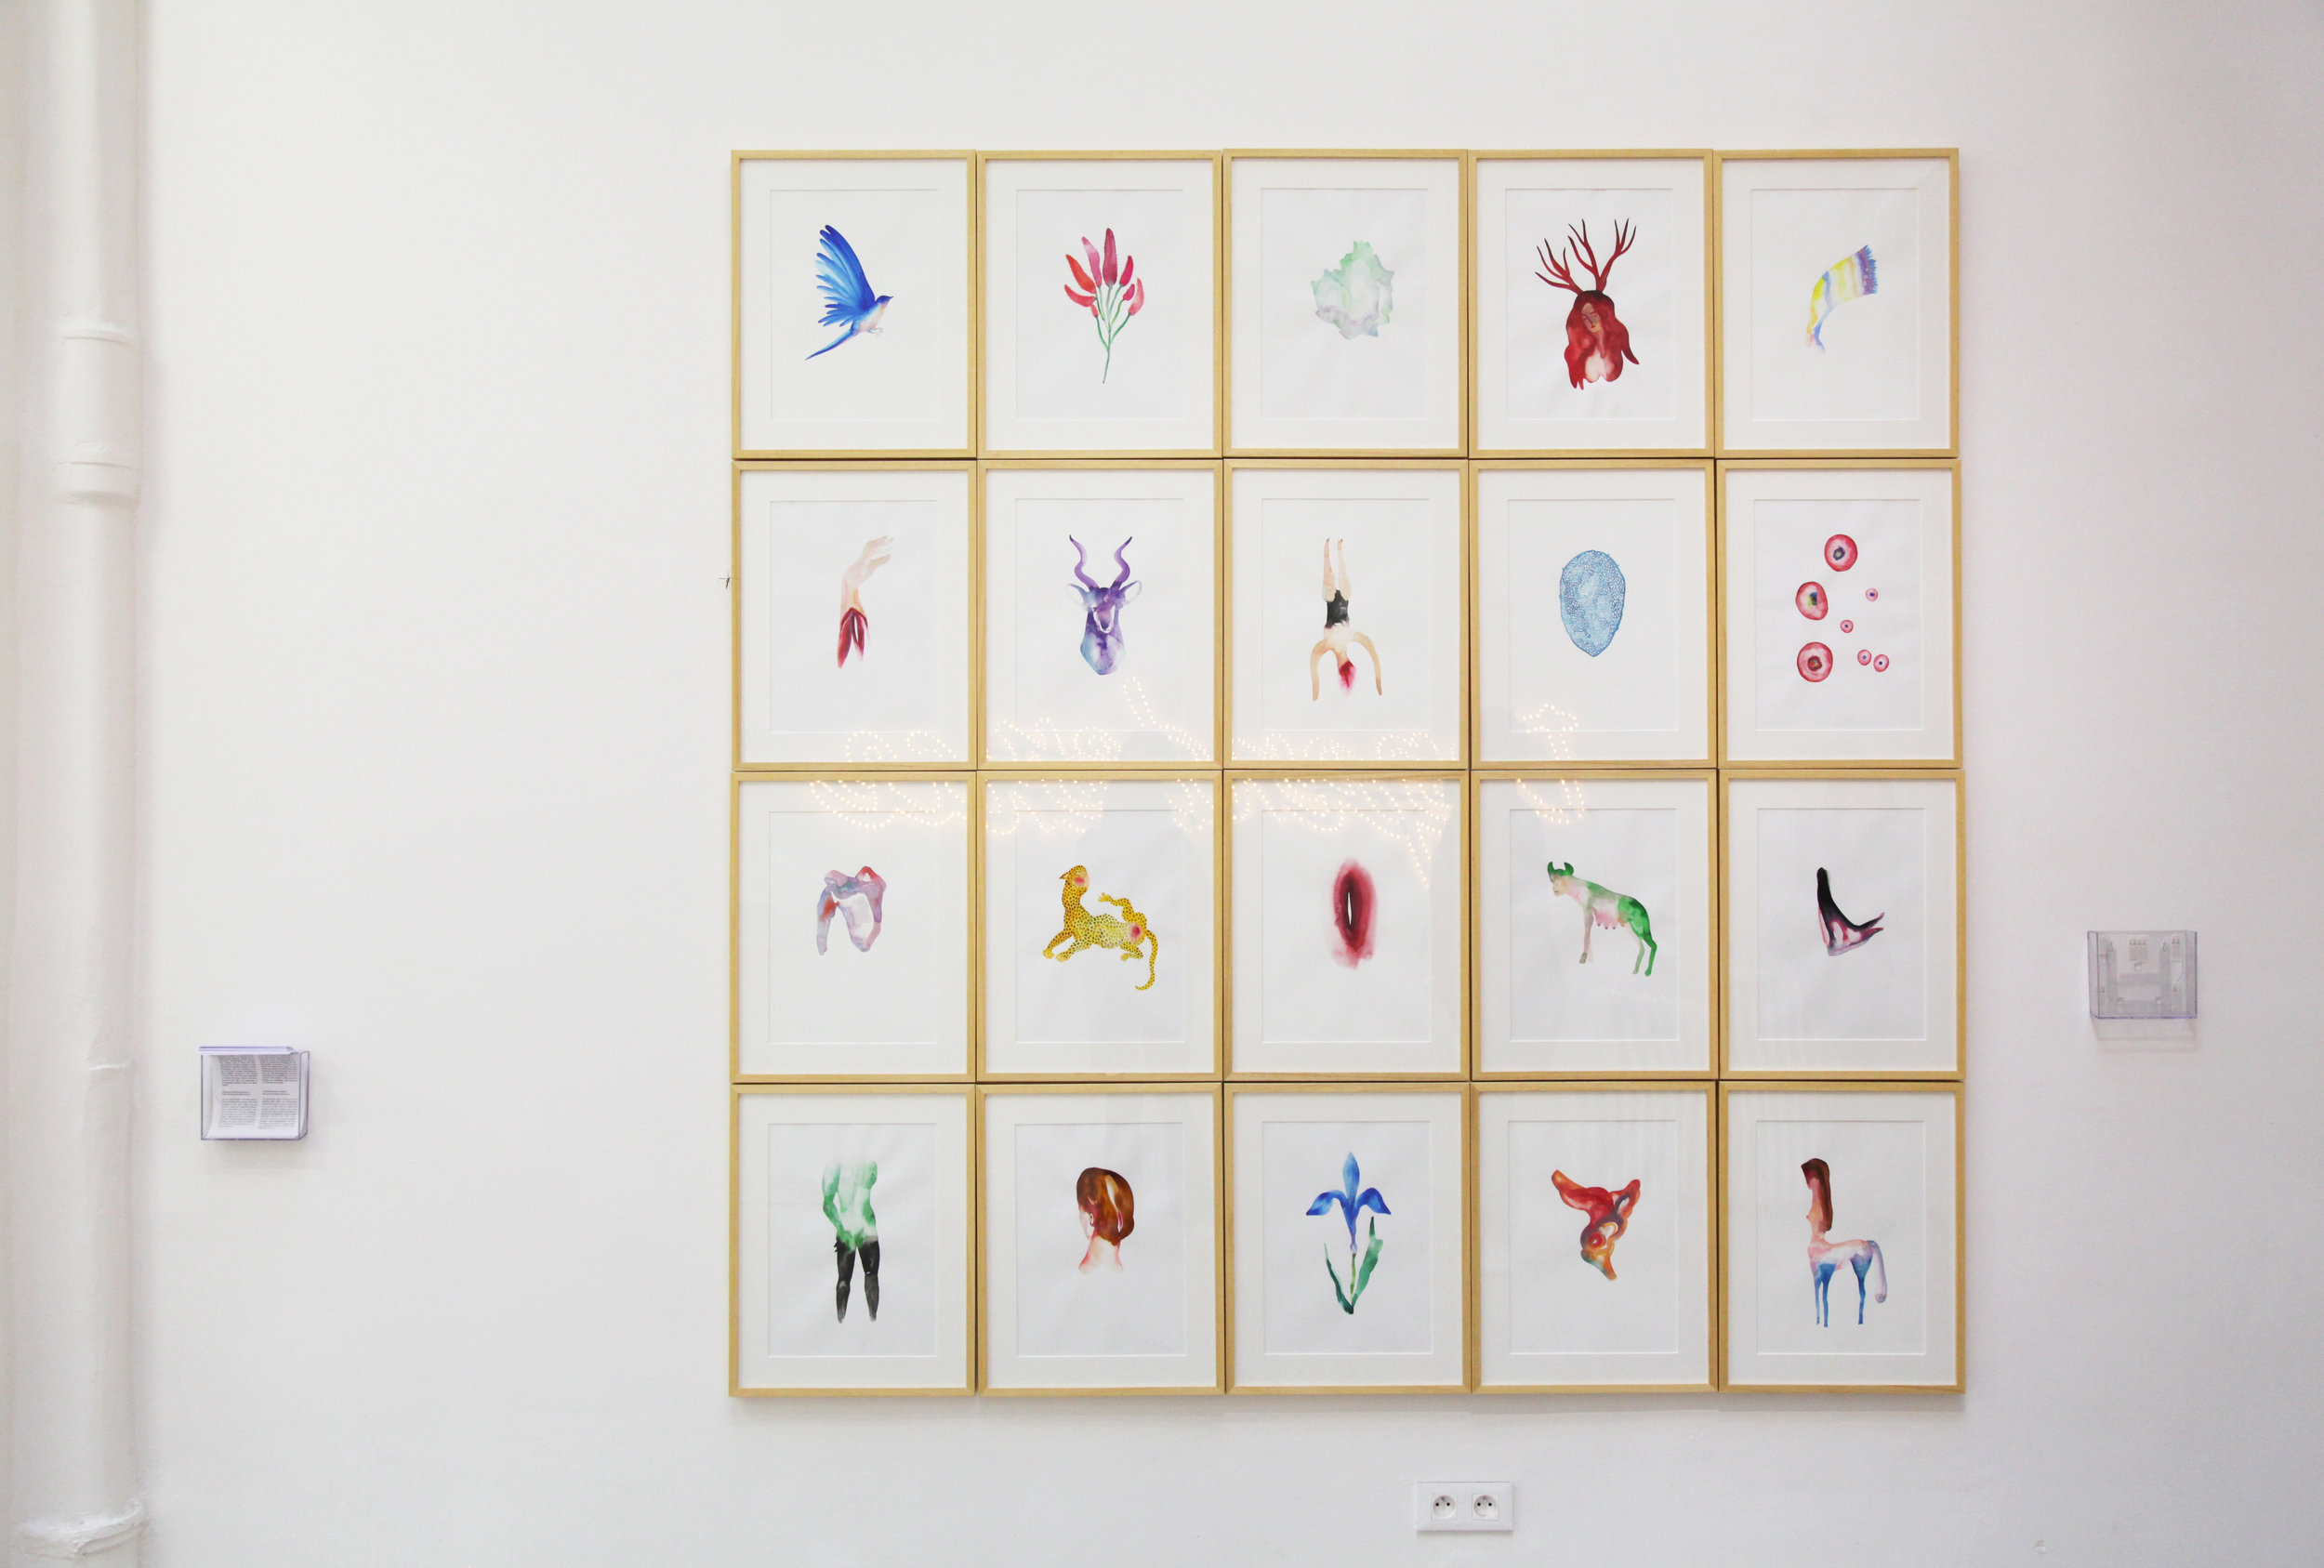 Daphné  , 2016, Installation made of 20 watercolor drawing on paper, 212,5x210cm, courtesy Choi&Lager Gallery